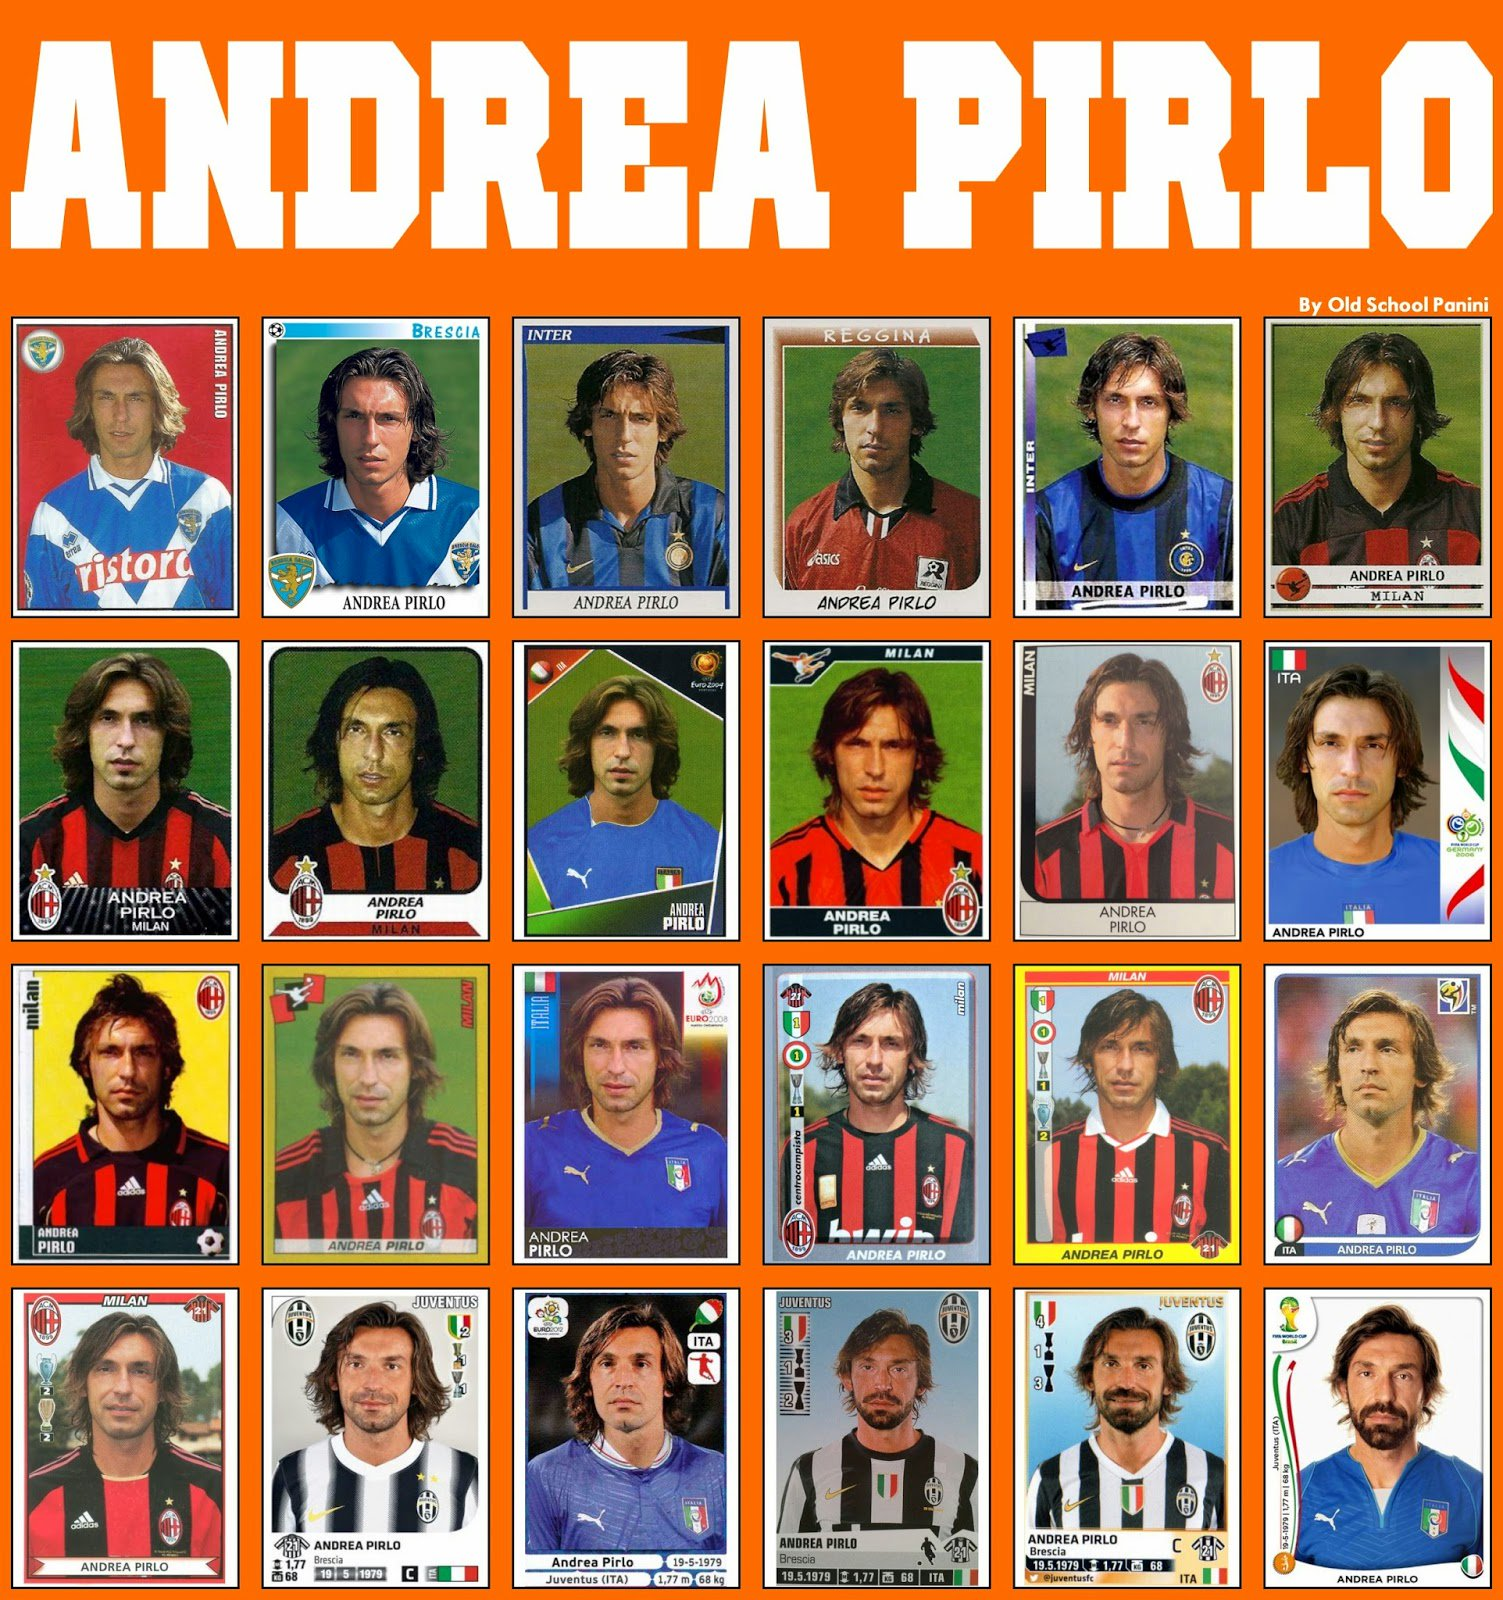 Happy Birthday to Andrea PIRLO